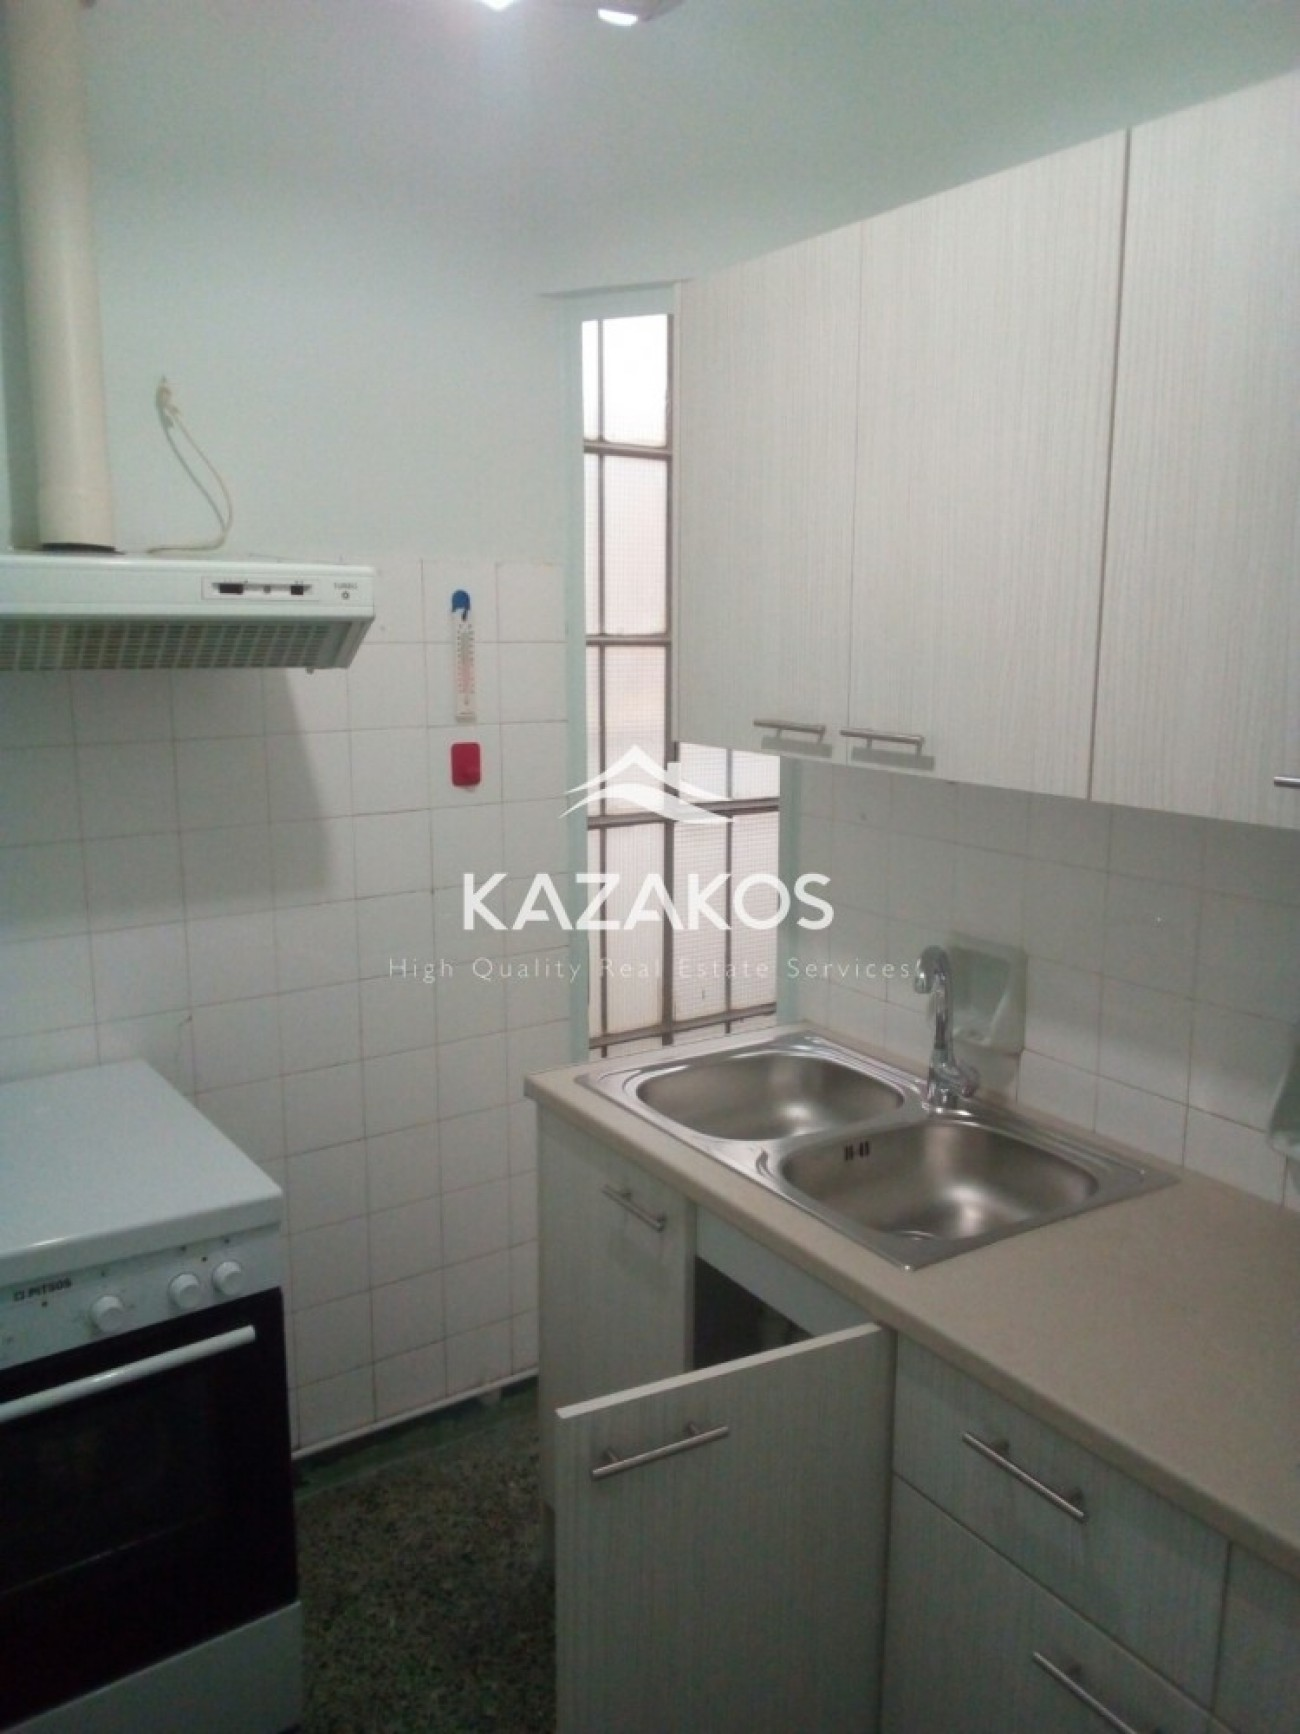 Apartment for Sale in Ymittos, Central & South Region of Athens, Greece